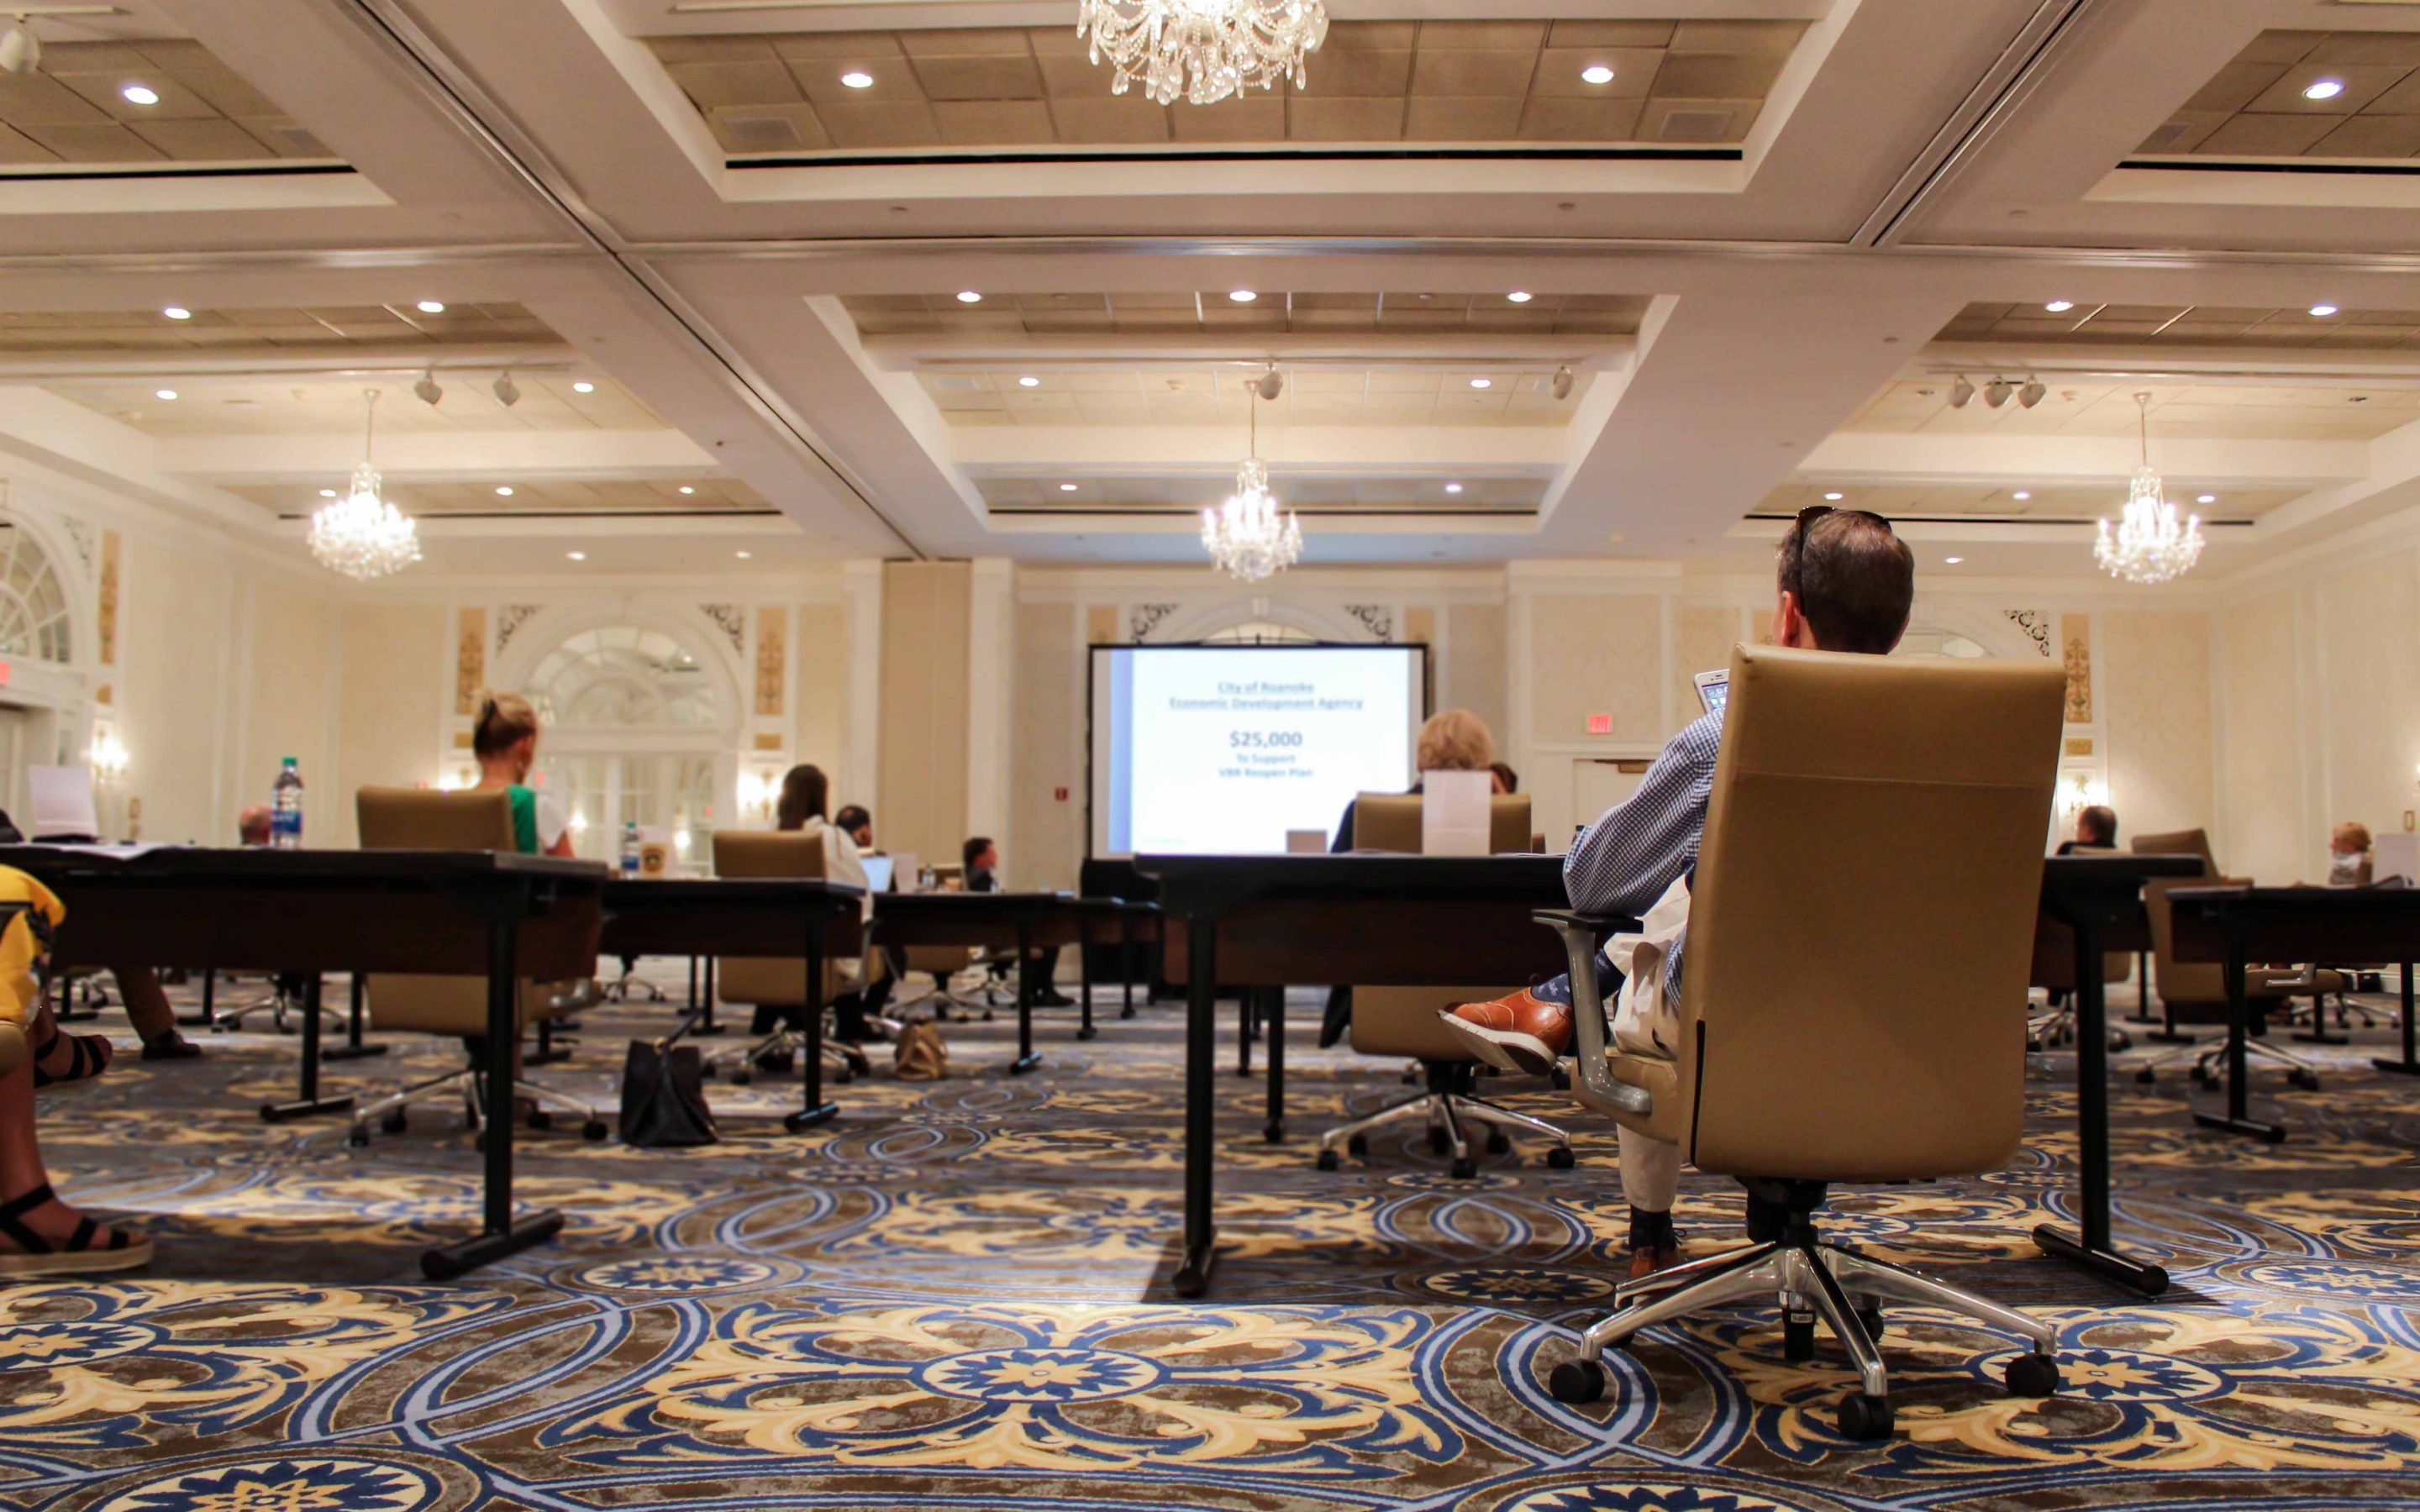 MEETING THE MOMENT AT THE HOTEL ROANOKE & CONFERENCE CENTER WITH HYBRID & VIRTUAL MEETINGS